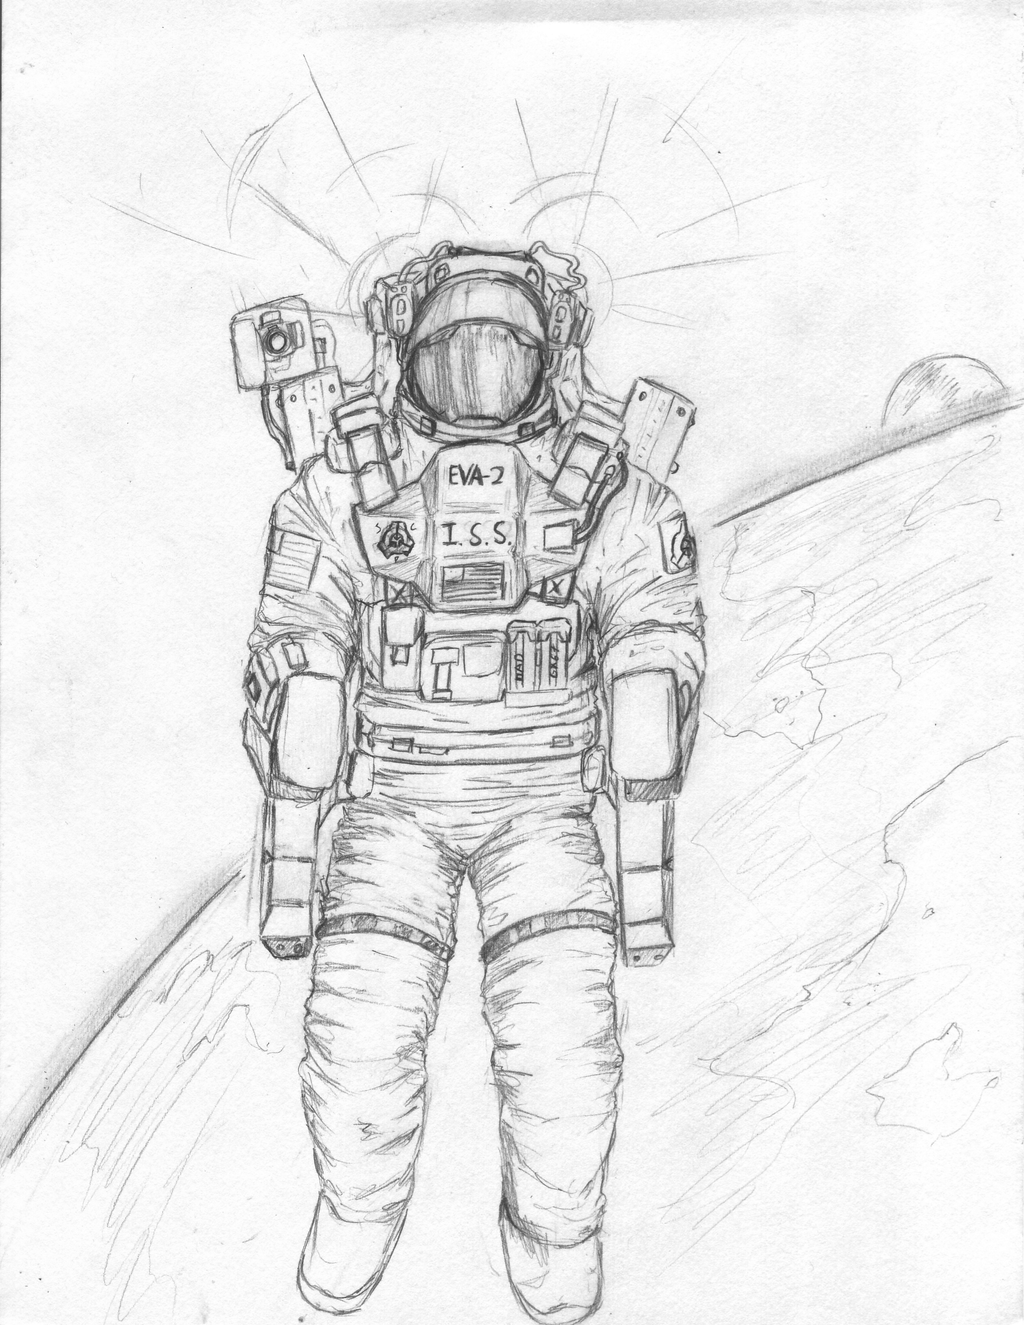 astronaut space suit drawing - photo #5